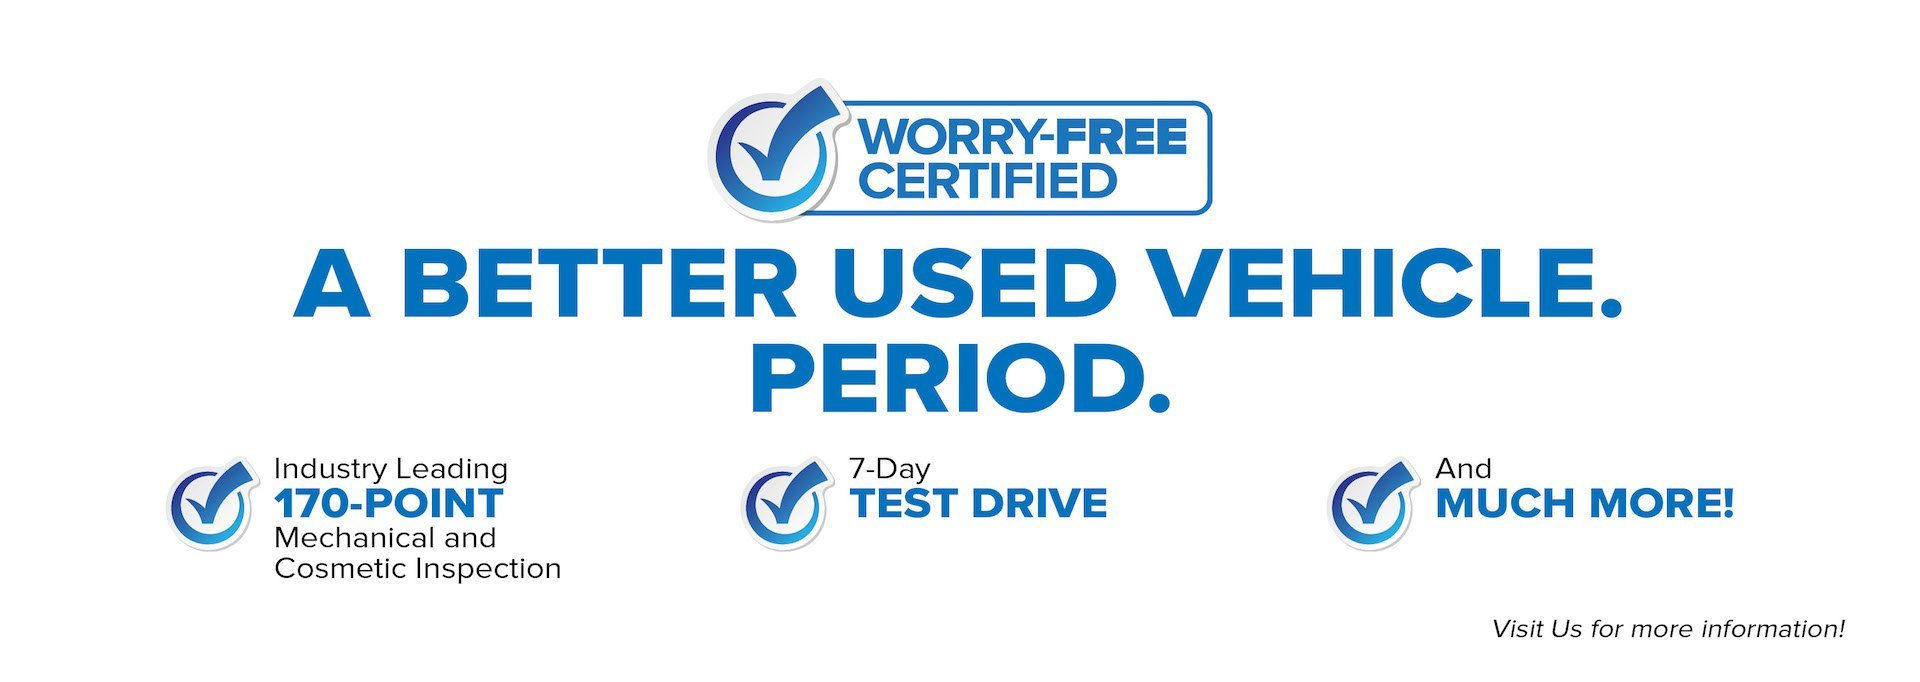 Worry Free Certified